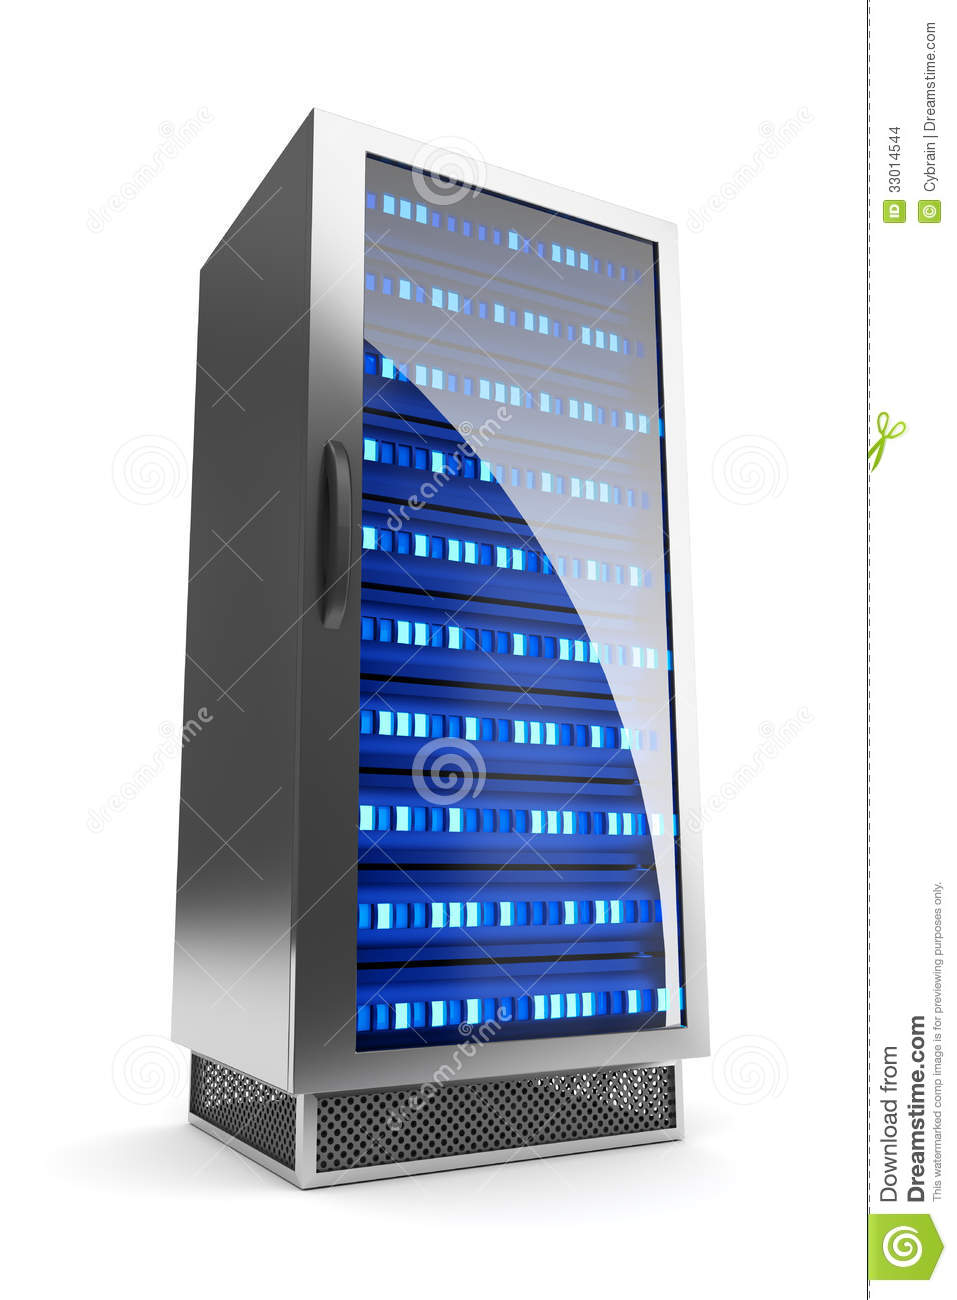 18 computer tower cabinet caisson d boitiers